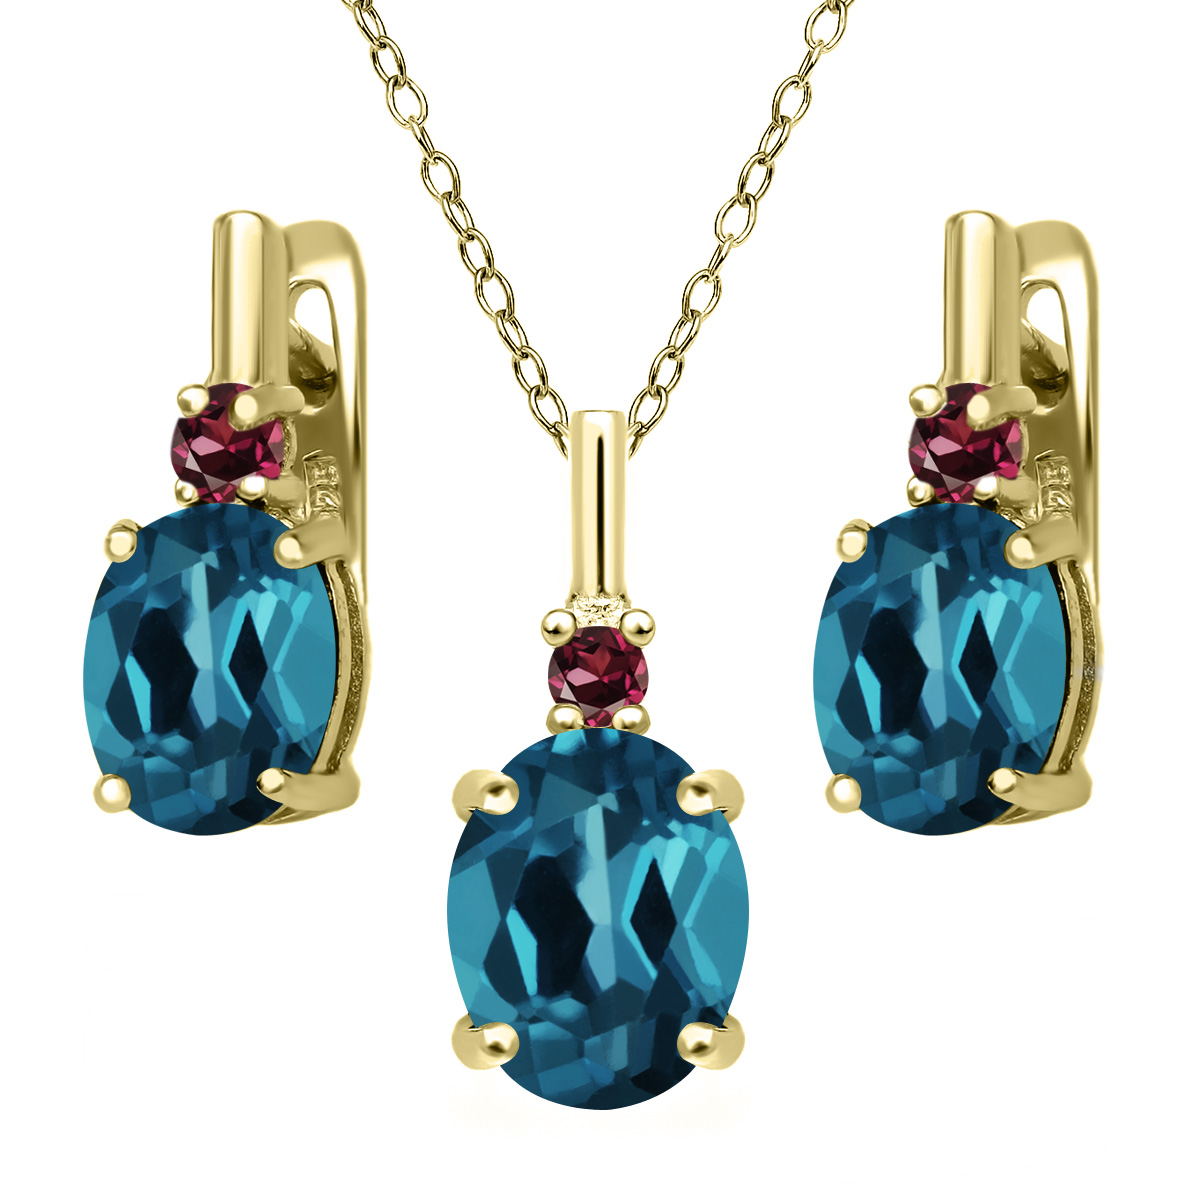 London Topaz Rhodolite Garnet 18K Yellow Gold Plated Silver Pendant Earrings Set by